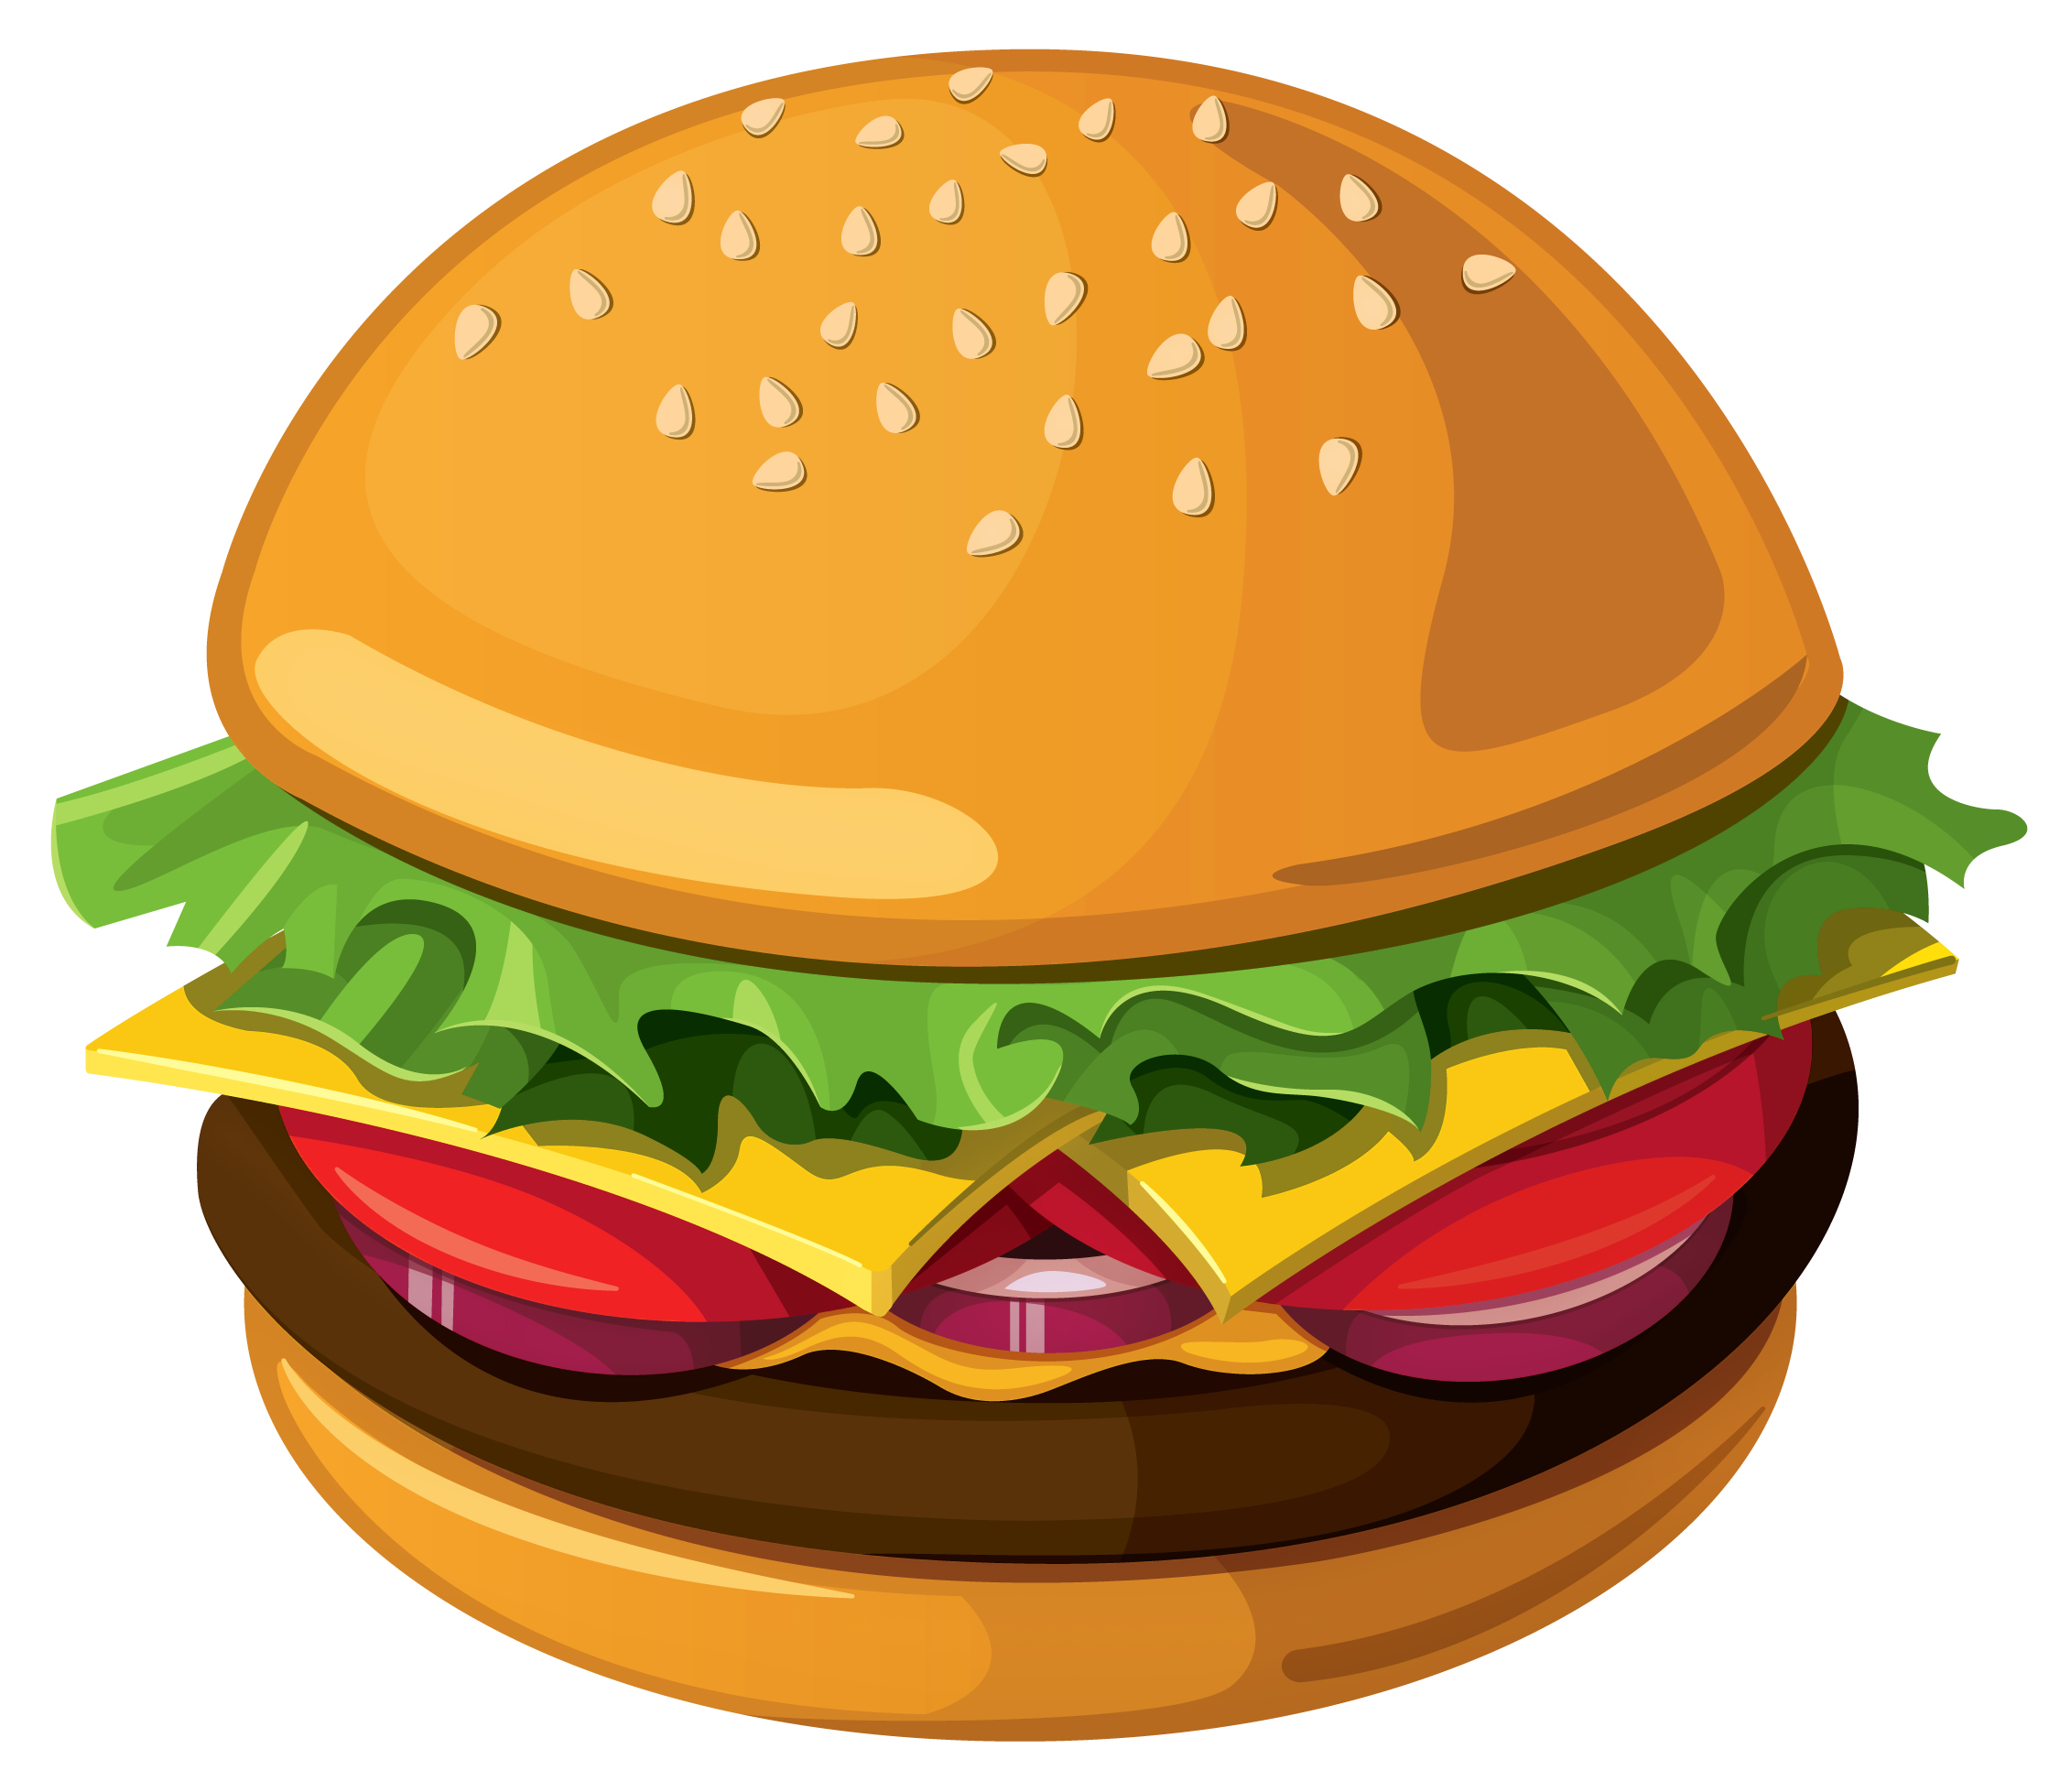 Food clipart transparent png image stock Hamburger PNG Vector Picture image stock